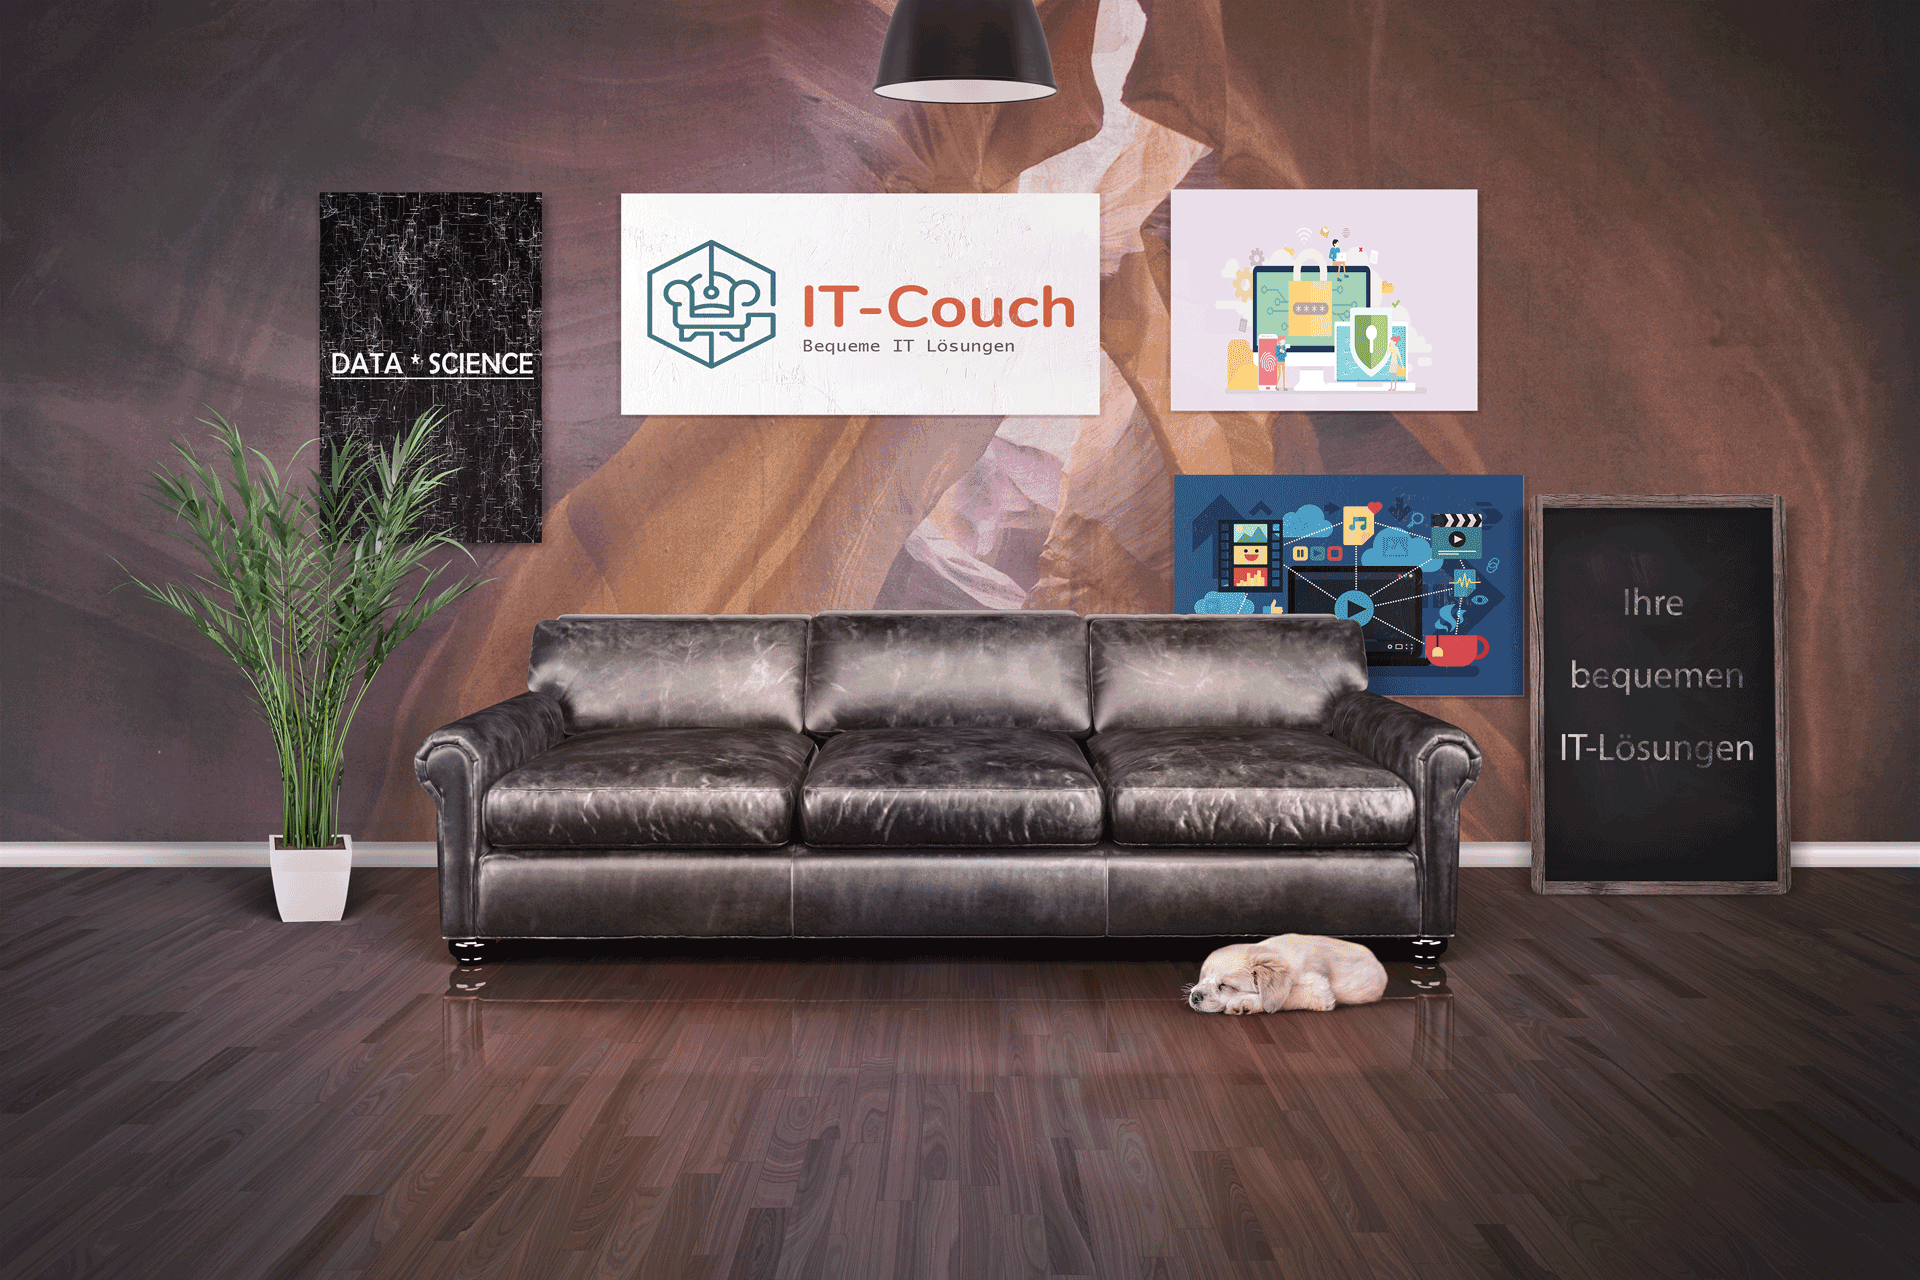 IT-Couch-_Google.png – IT-Couch UG